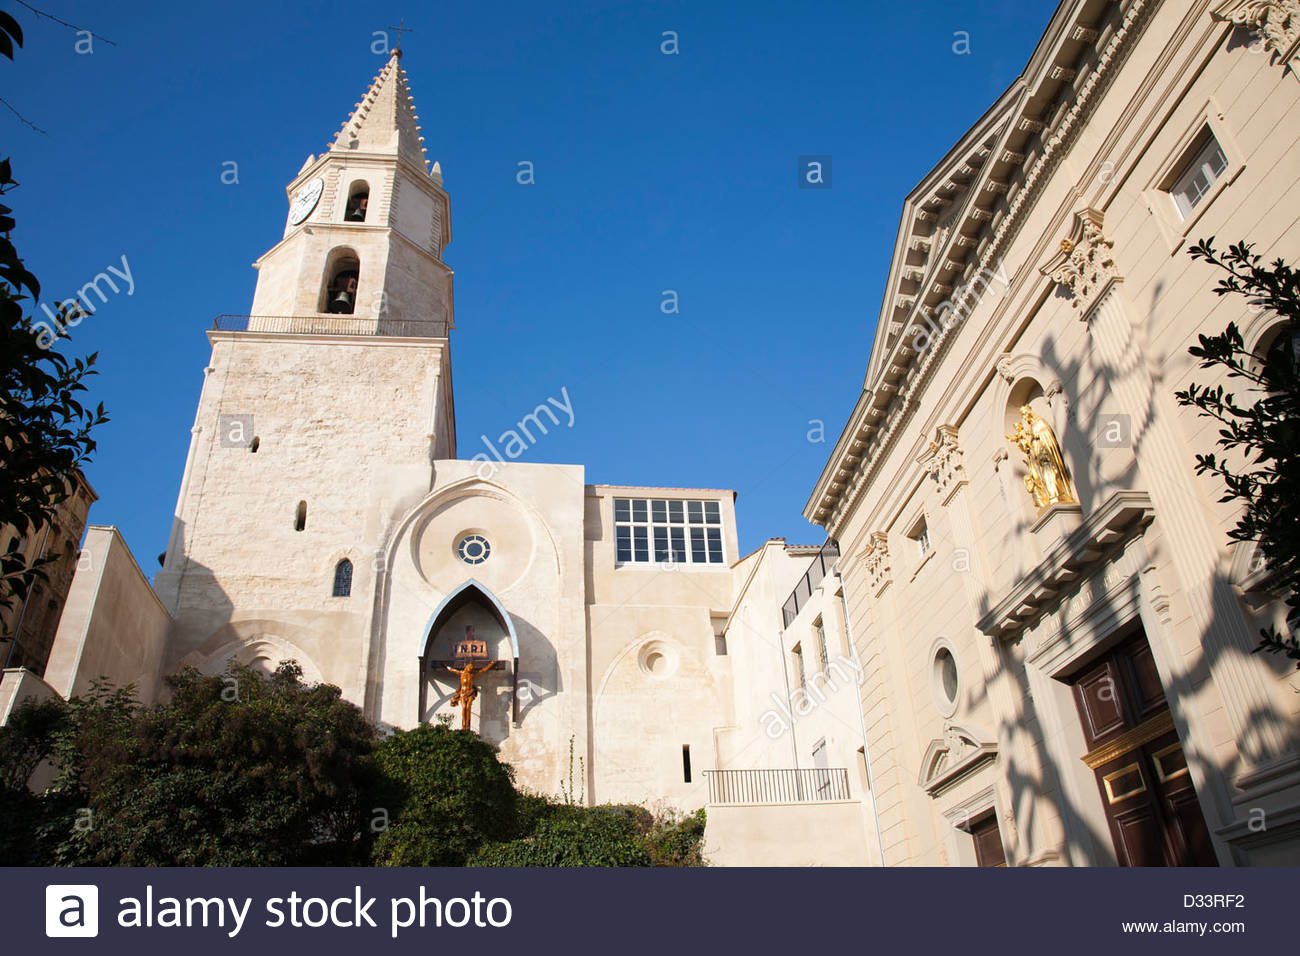 eglise des accoules,marseille,provence,france,europe Stock Photo